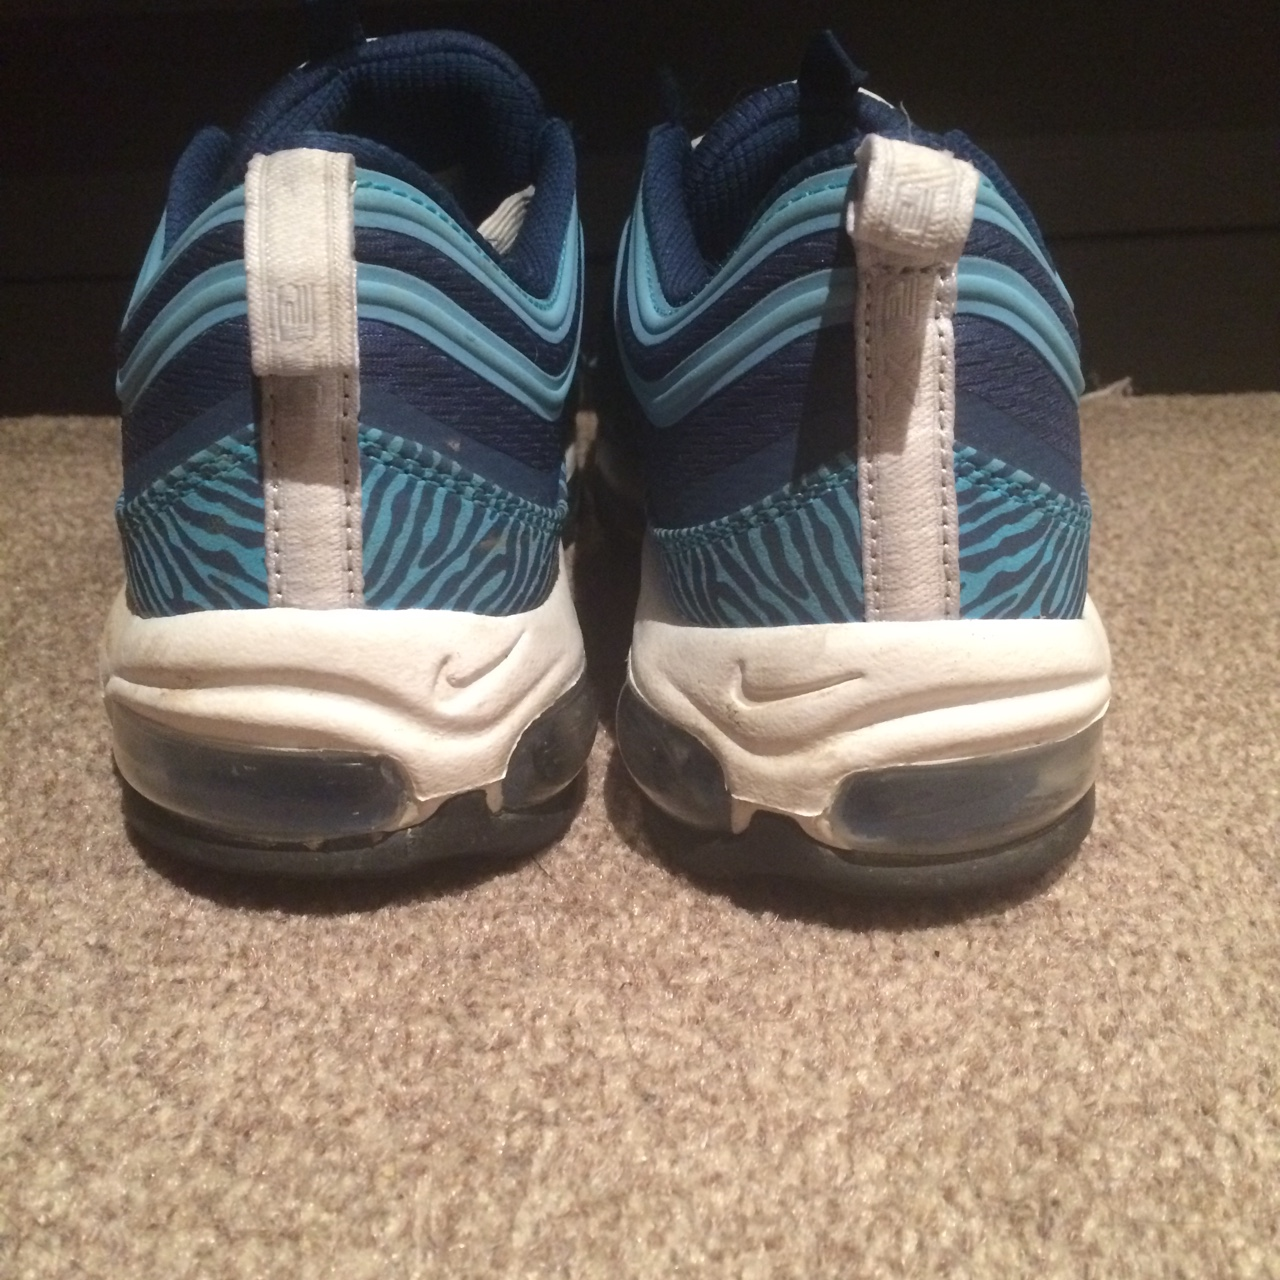 Nike Air Max 97 Blue Zebra, UK Size 9, £80 for the Depop